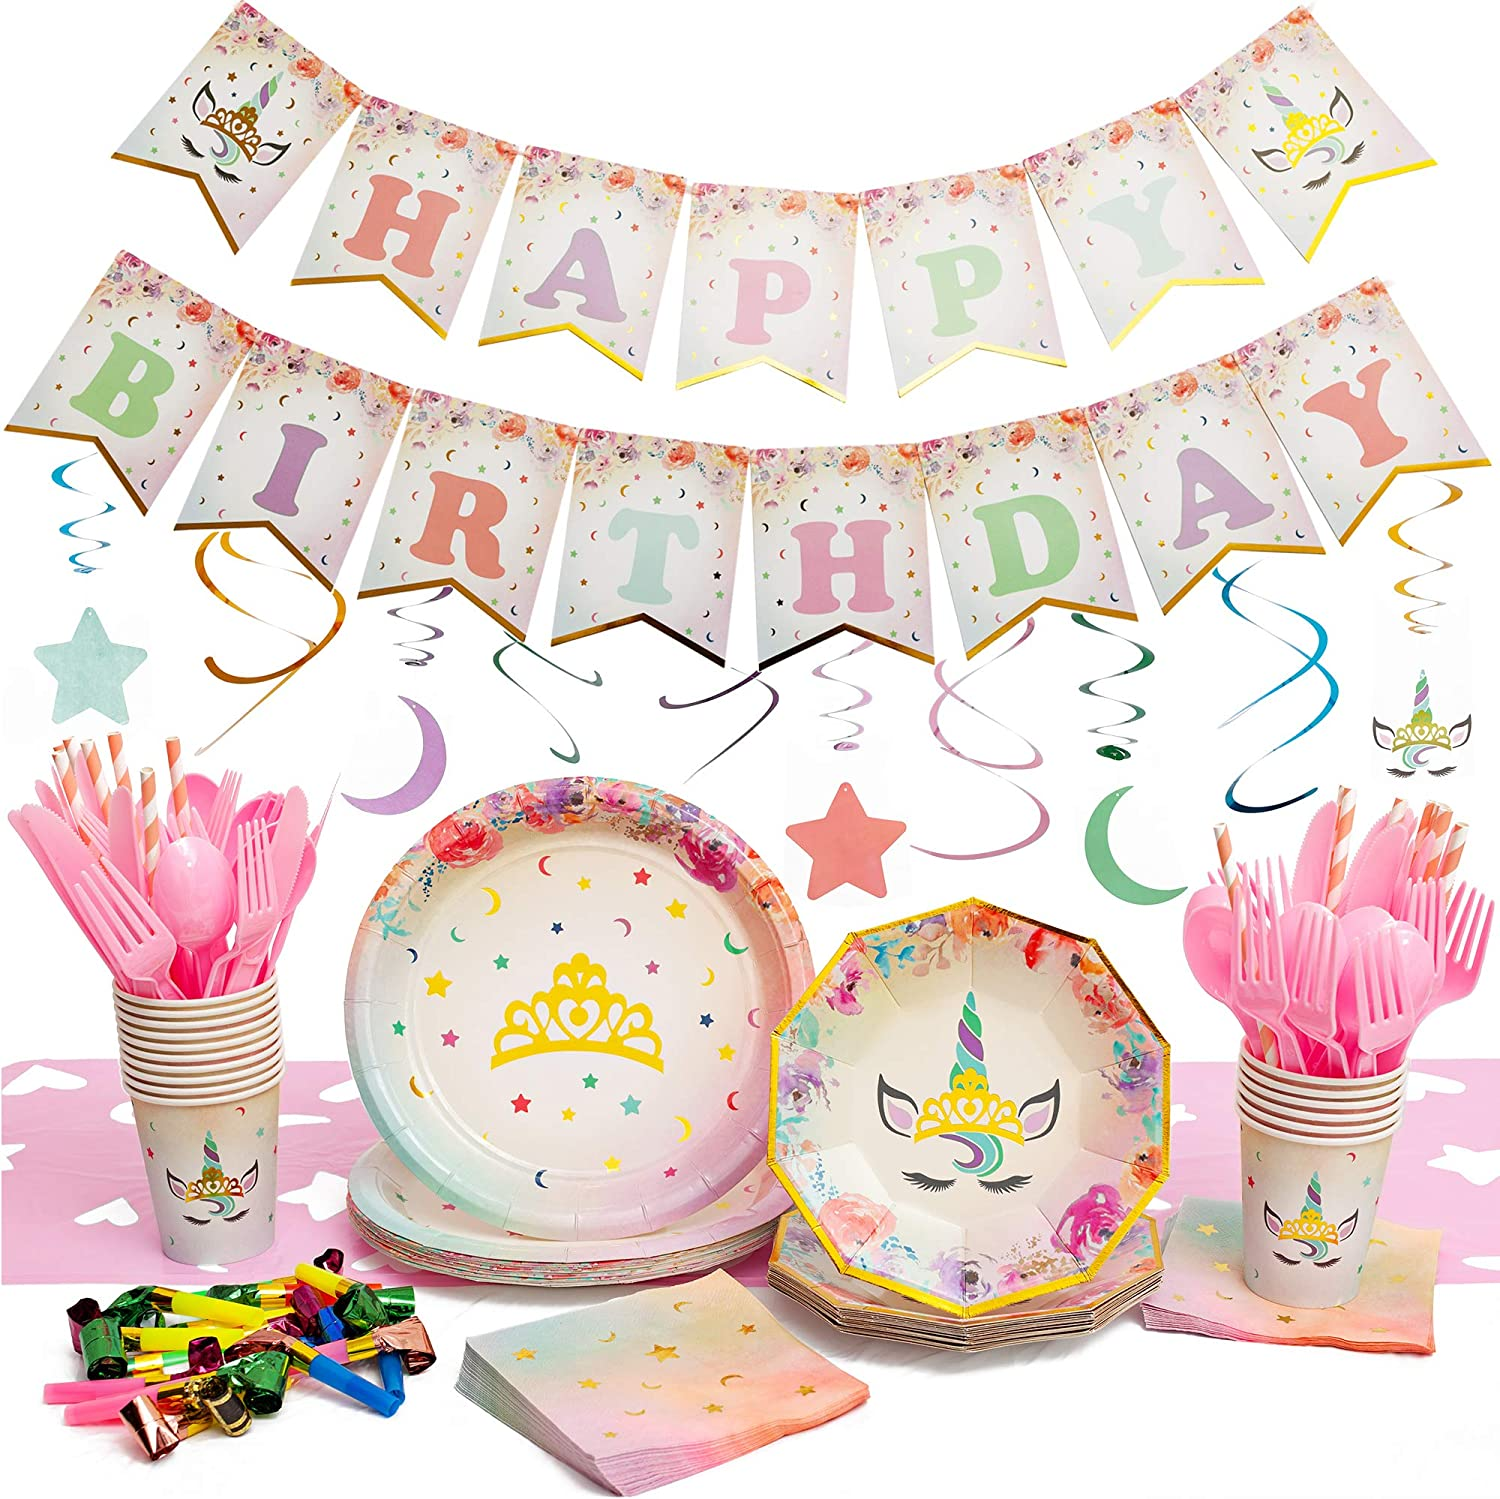 176 Piece Unicorn Party Supplies Pack - Serves 16 - Gold Metallic Foil Stamp - Set Includes Plates - Cups - Napkins - Straws - Table Cloth - Cutlery - Birthday Banner - Decorations and Favors